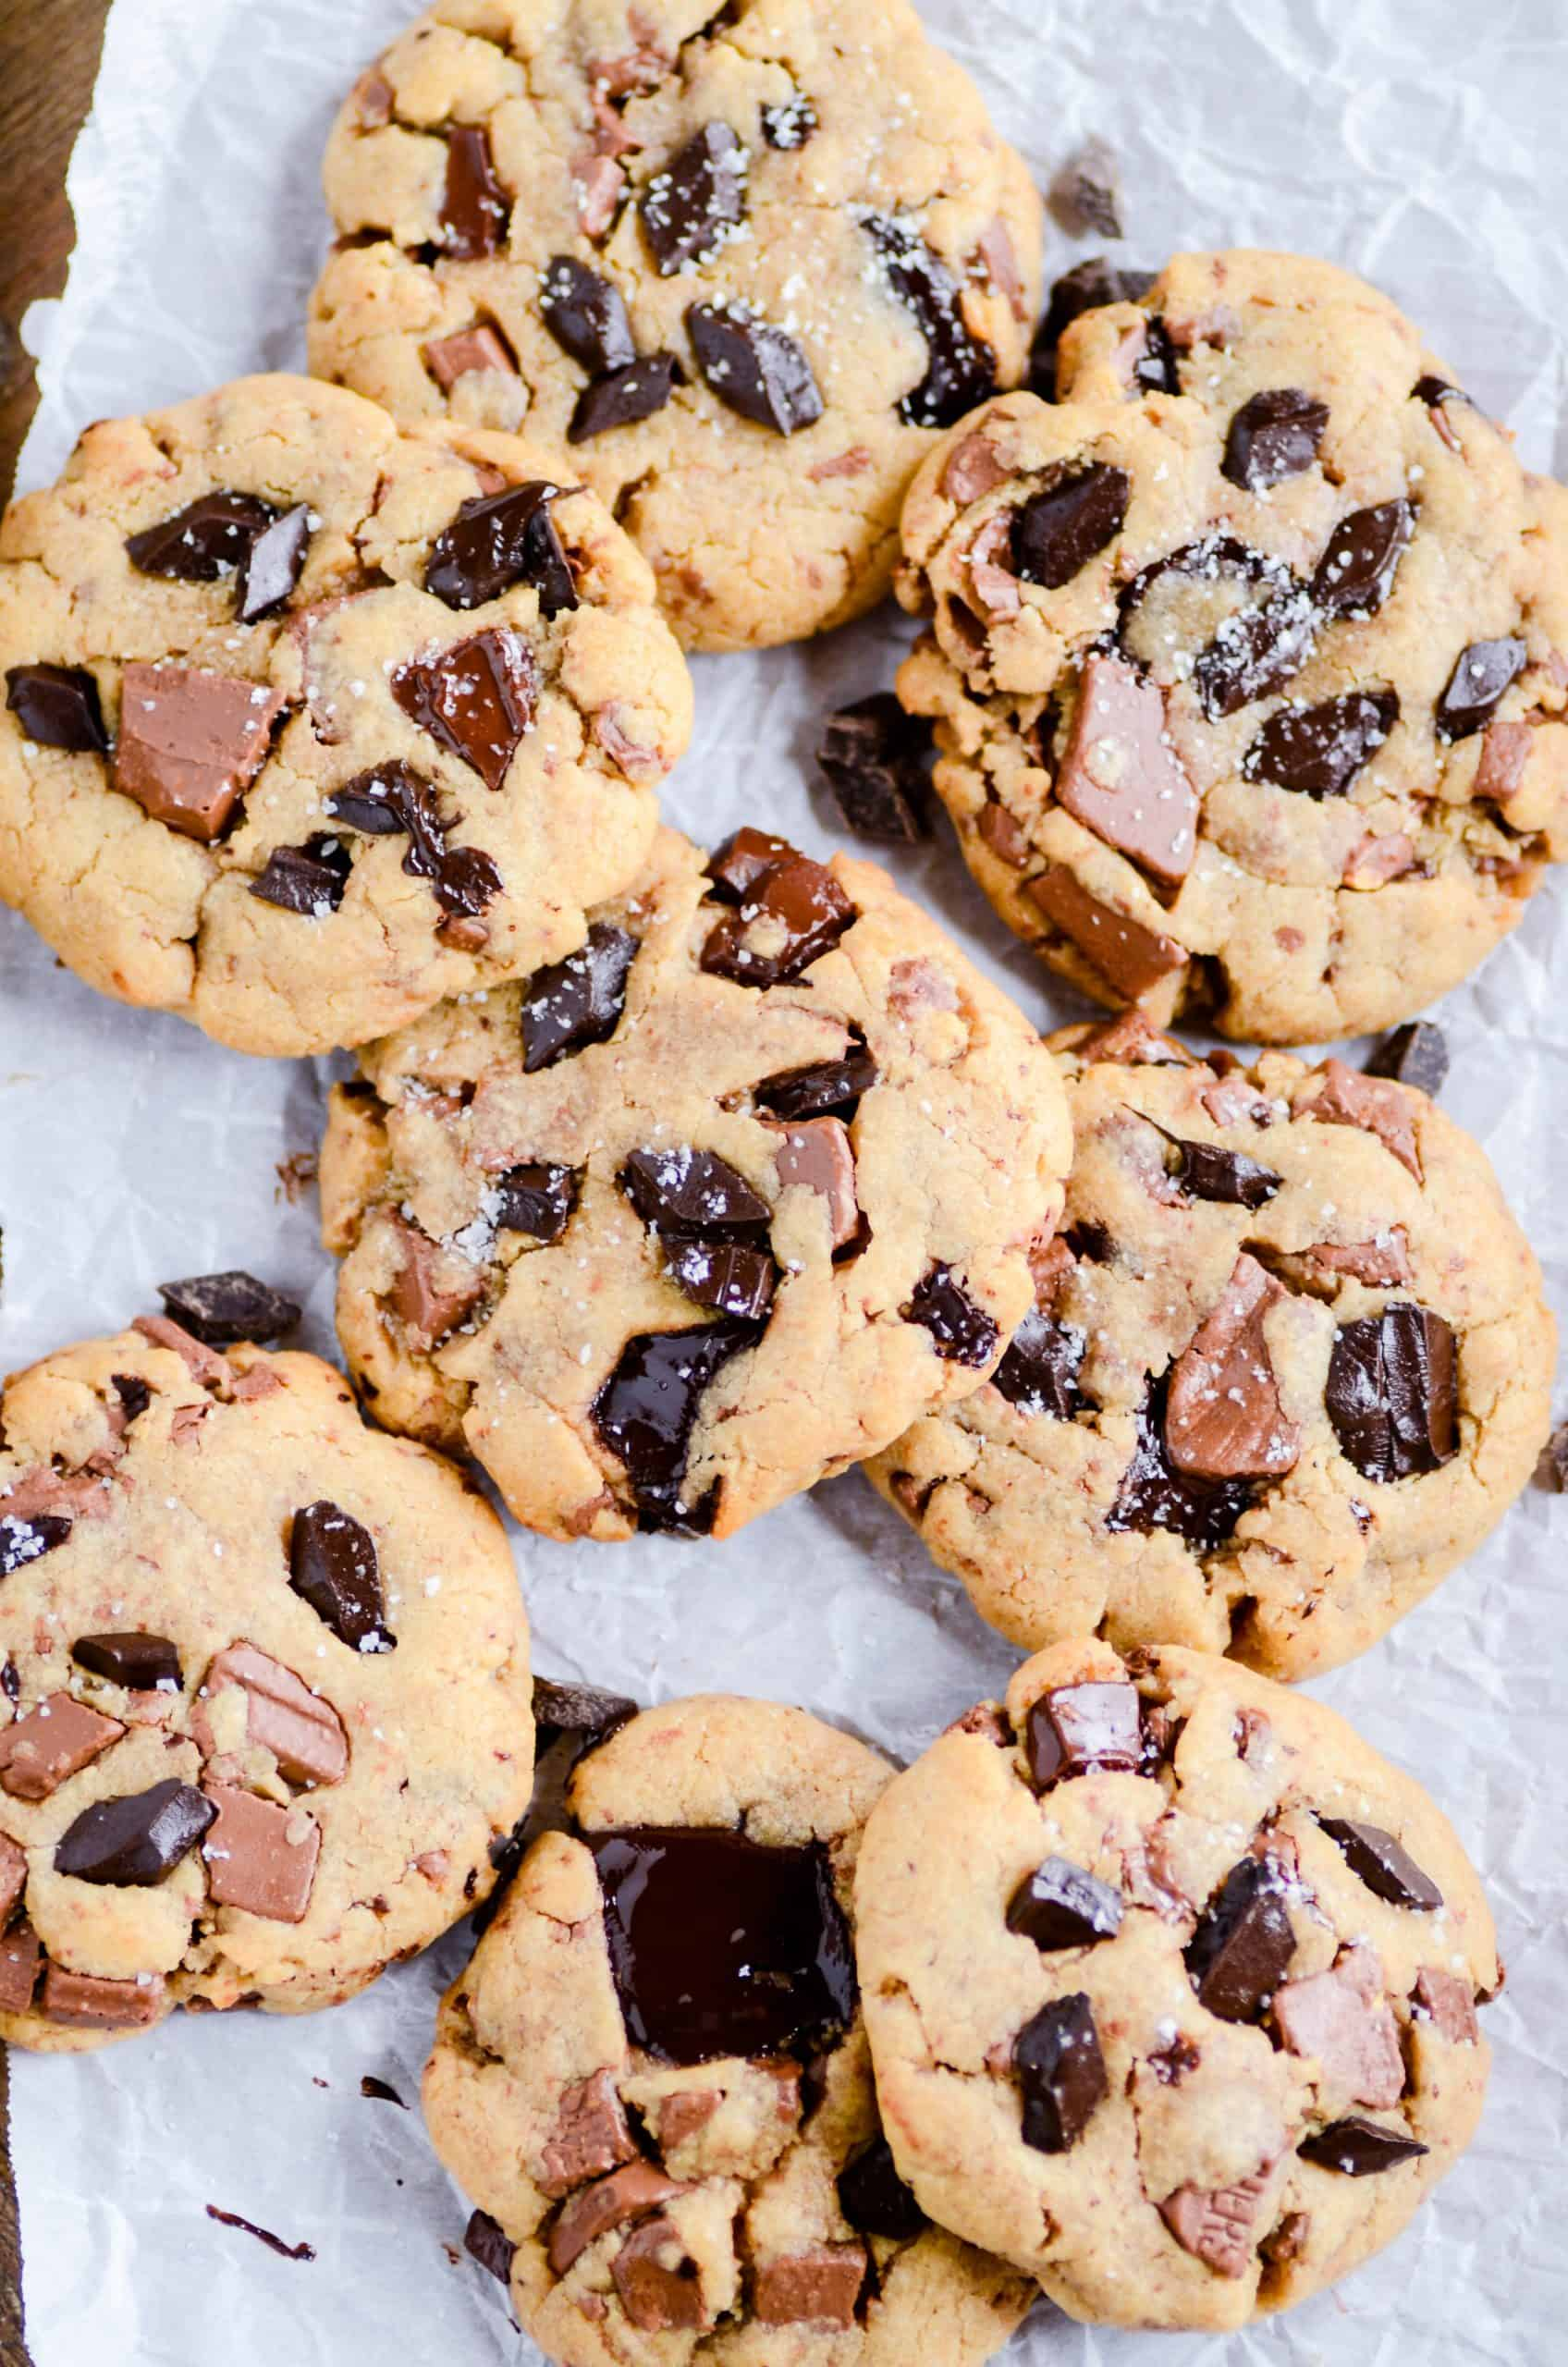 A recipe for unbelievably thick and chewy peanut butter cookies that calls for a POUND of milk and semi-sweet chocolate chunks!